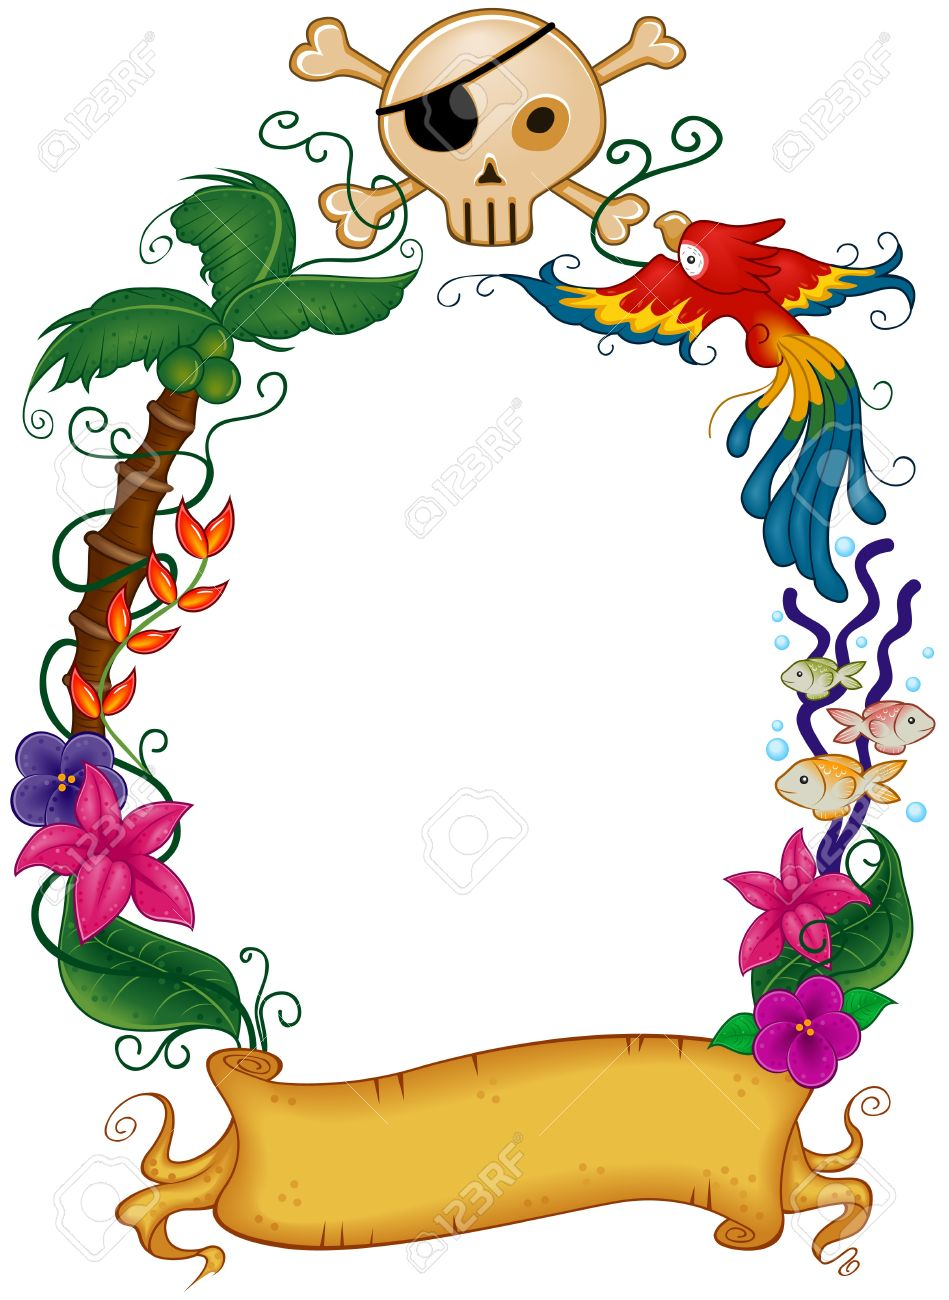 Pirate Themed Frame Stock Photo, Picture And Royalty Free Image ...